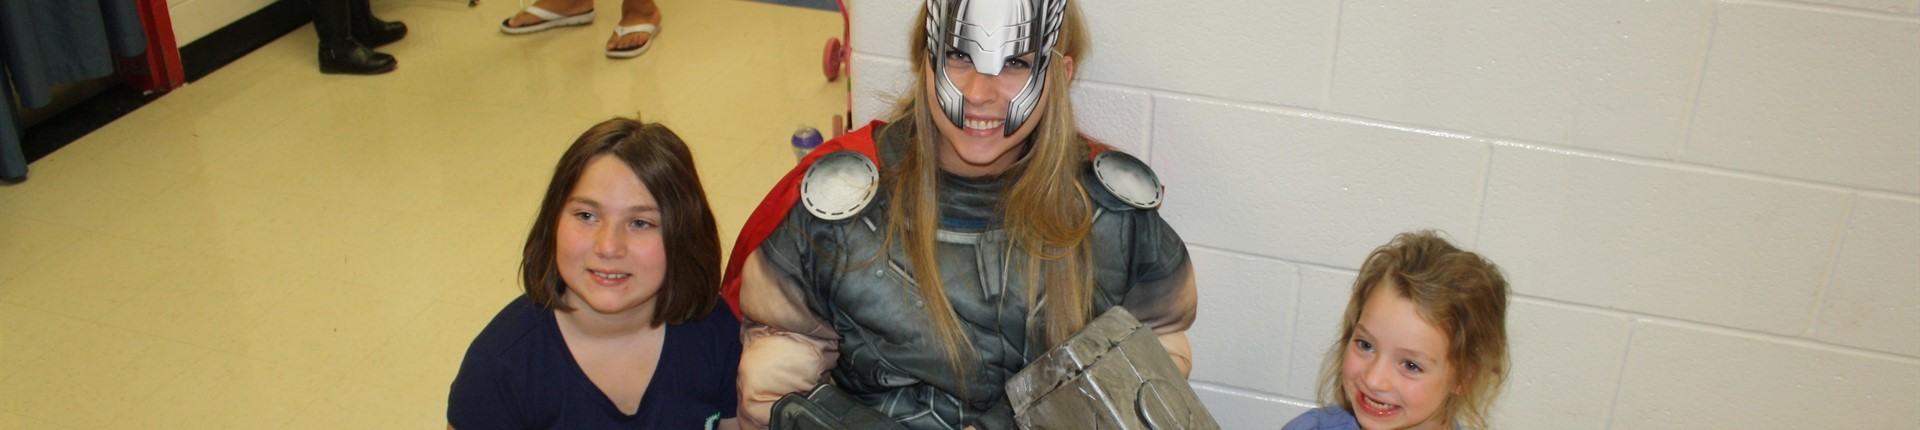 Thor at Family Night!